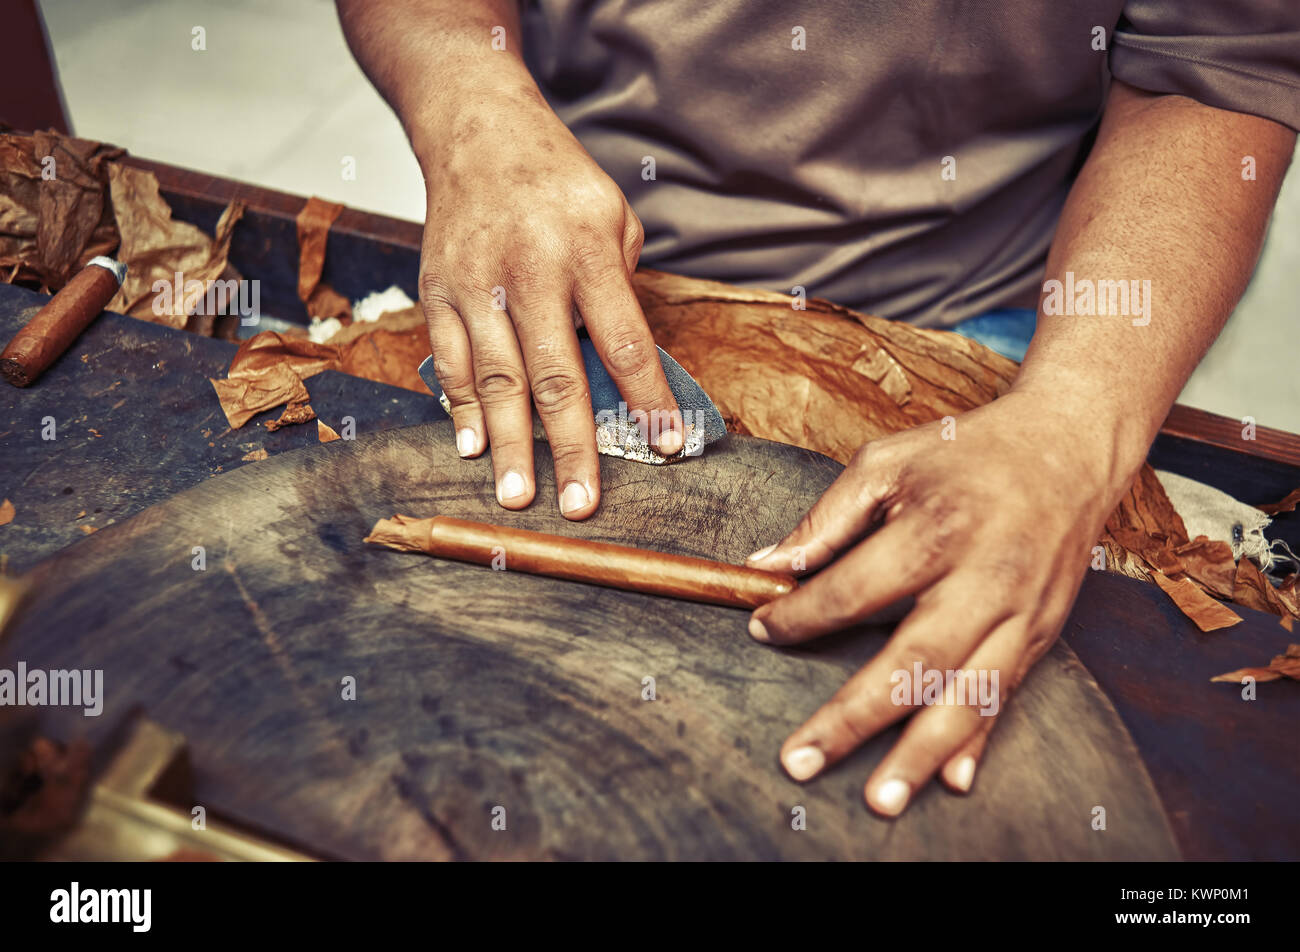 Closeup of hands making cigar from tobacco leaves. Traditional manufacture of cigars. Dominican Republic Vintage - Stock Image